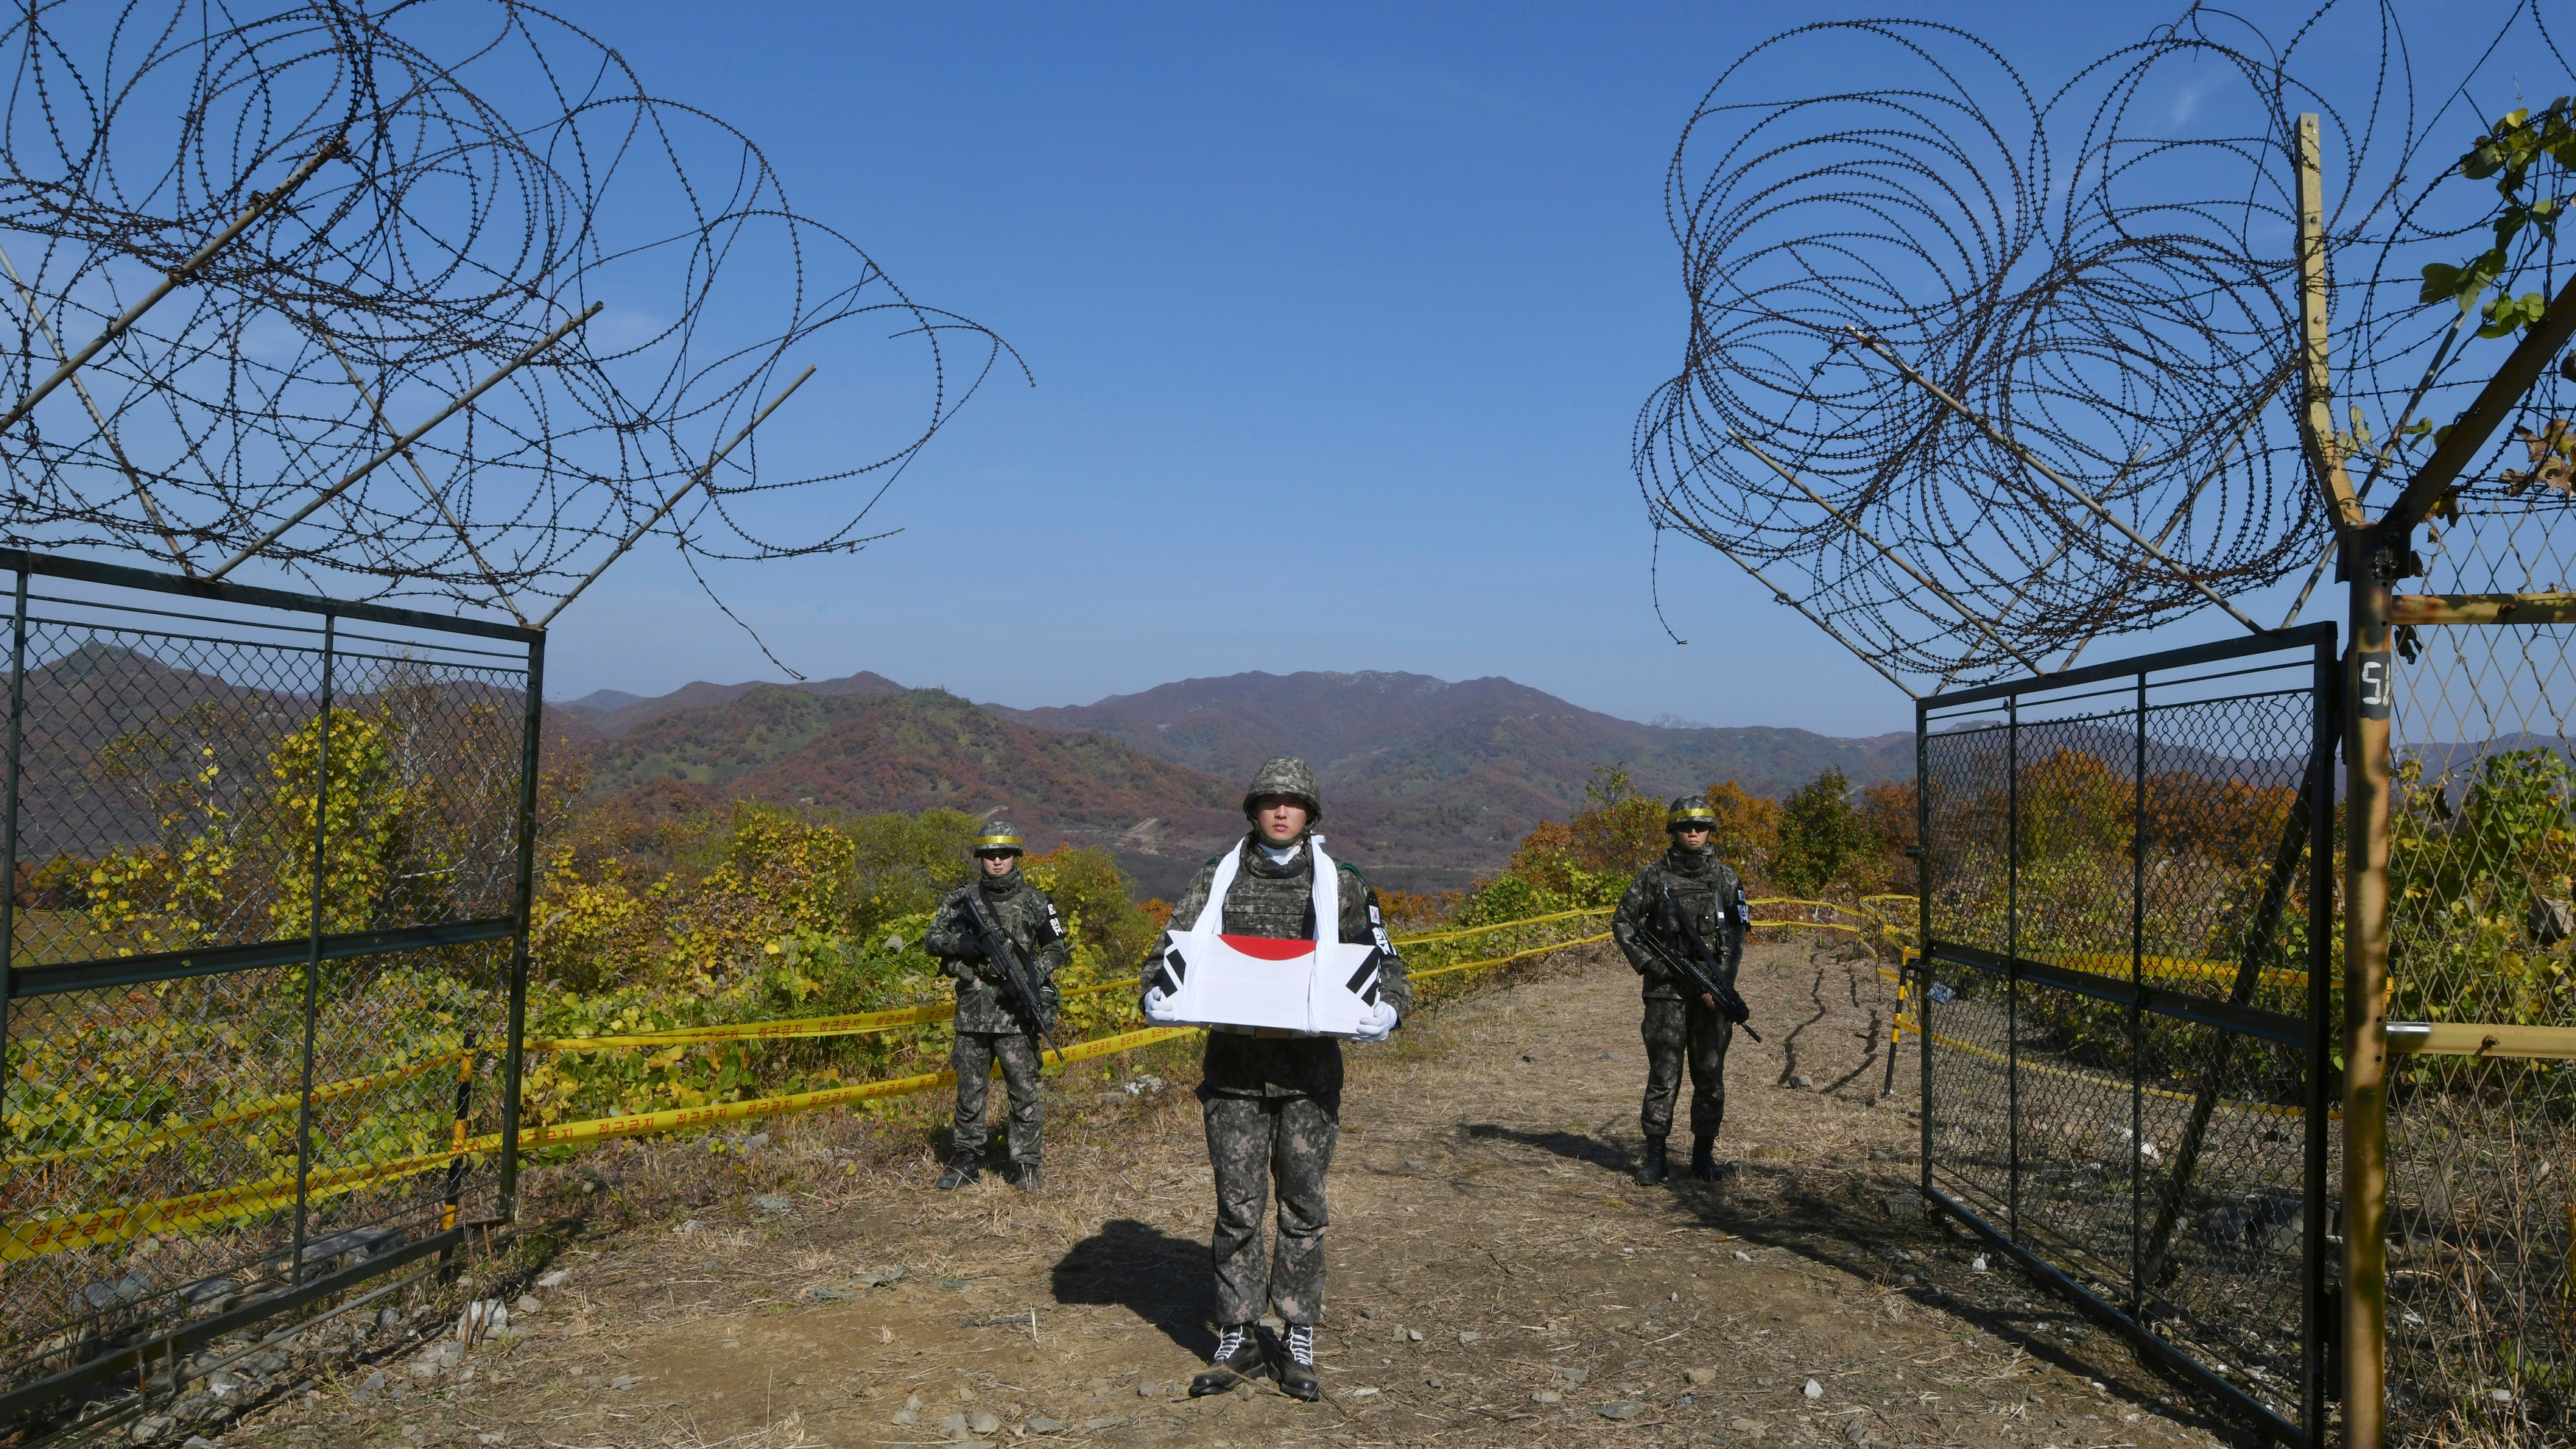 A South Korean soldier carries a coffin containing a piece of bone believed to be the remains of an unidentified South Korean soldier killed in the Korean War in the Demilitarized Zone (DMZ) dividing the two Koreas in Cheorwon, northeast of Seoul, Thursday, Oct. 25, 2018. The excavation project is part of a comprehensive military agreement that the two Koreas' defense ministers signed last month after the third summit between South Korean President Moon Jae-in and North Korean leader Kim Jong Un in Pyongyang. (Jung Yeon-je/Pool Photo via AP)